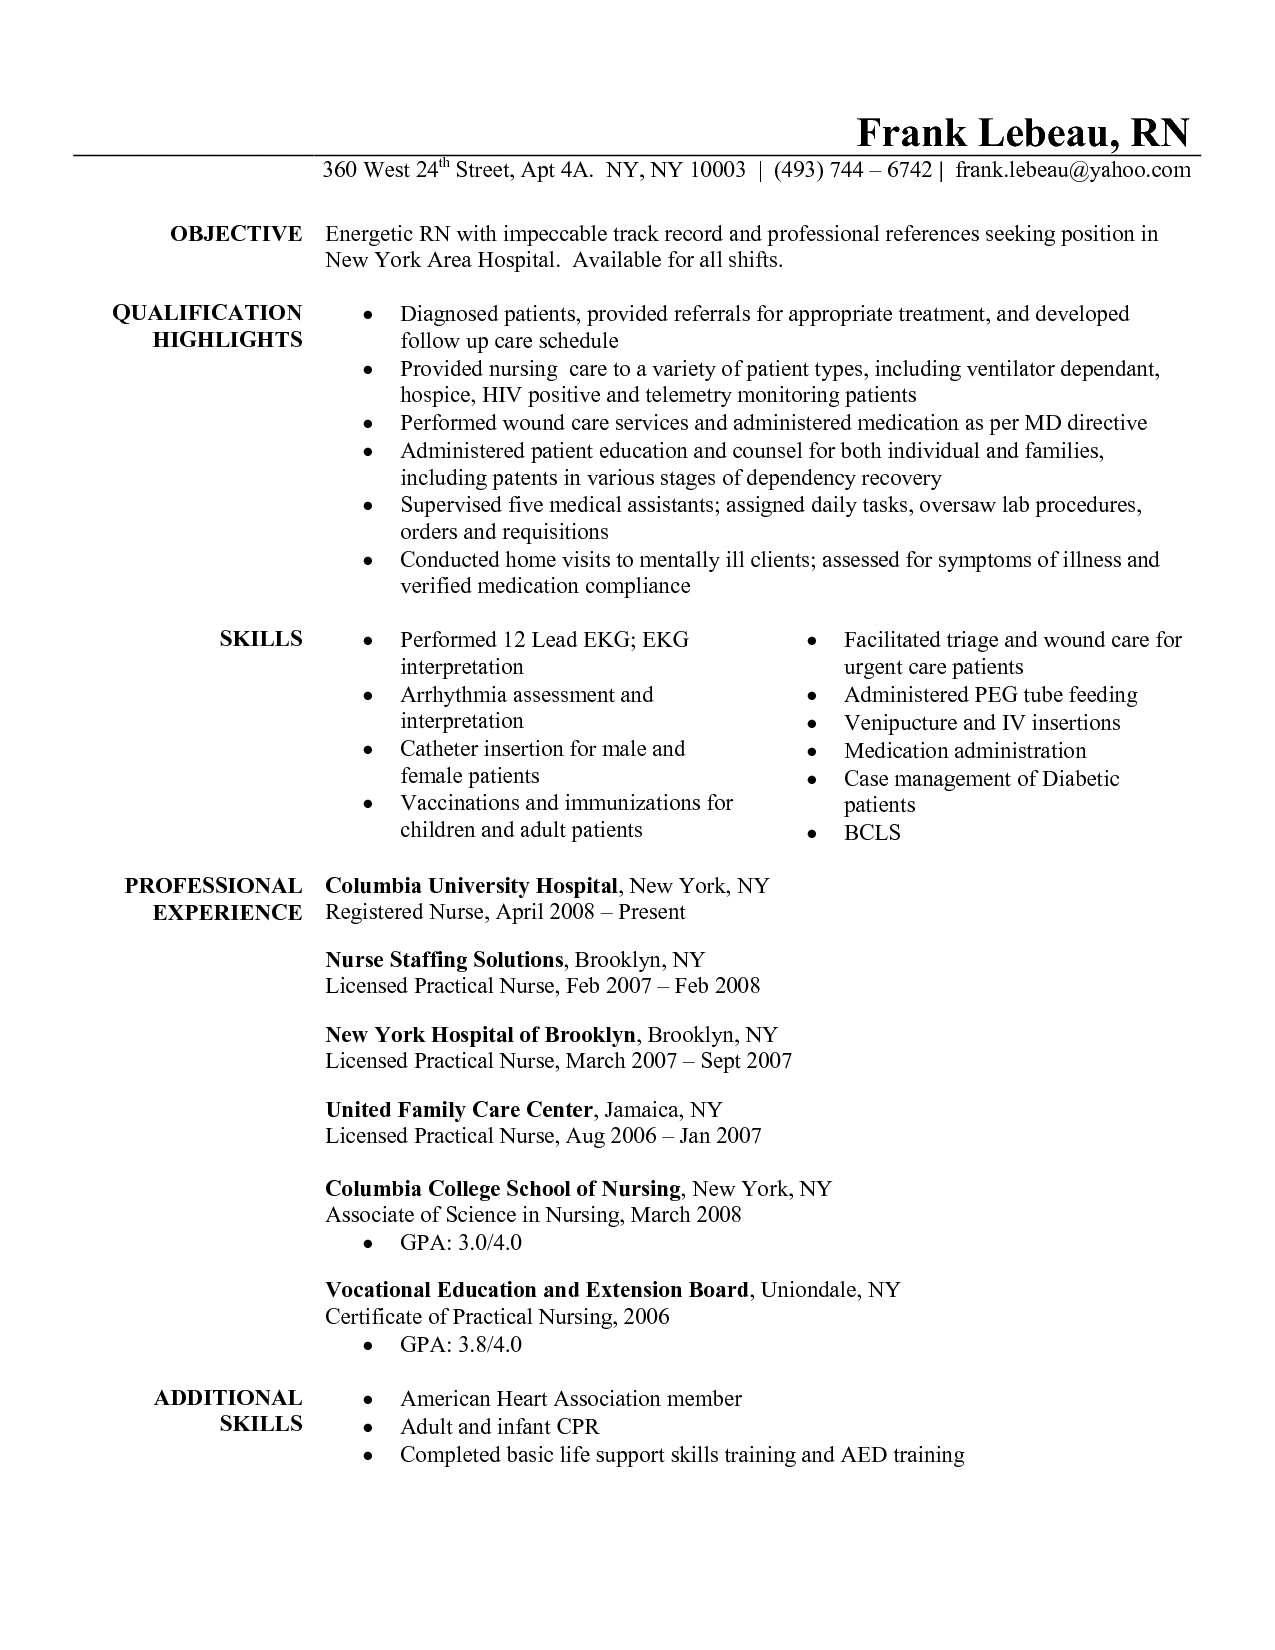 Resume For Triage Nurse Resumecareer Info Resume For